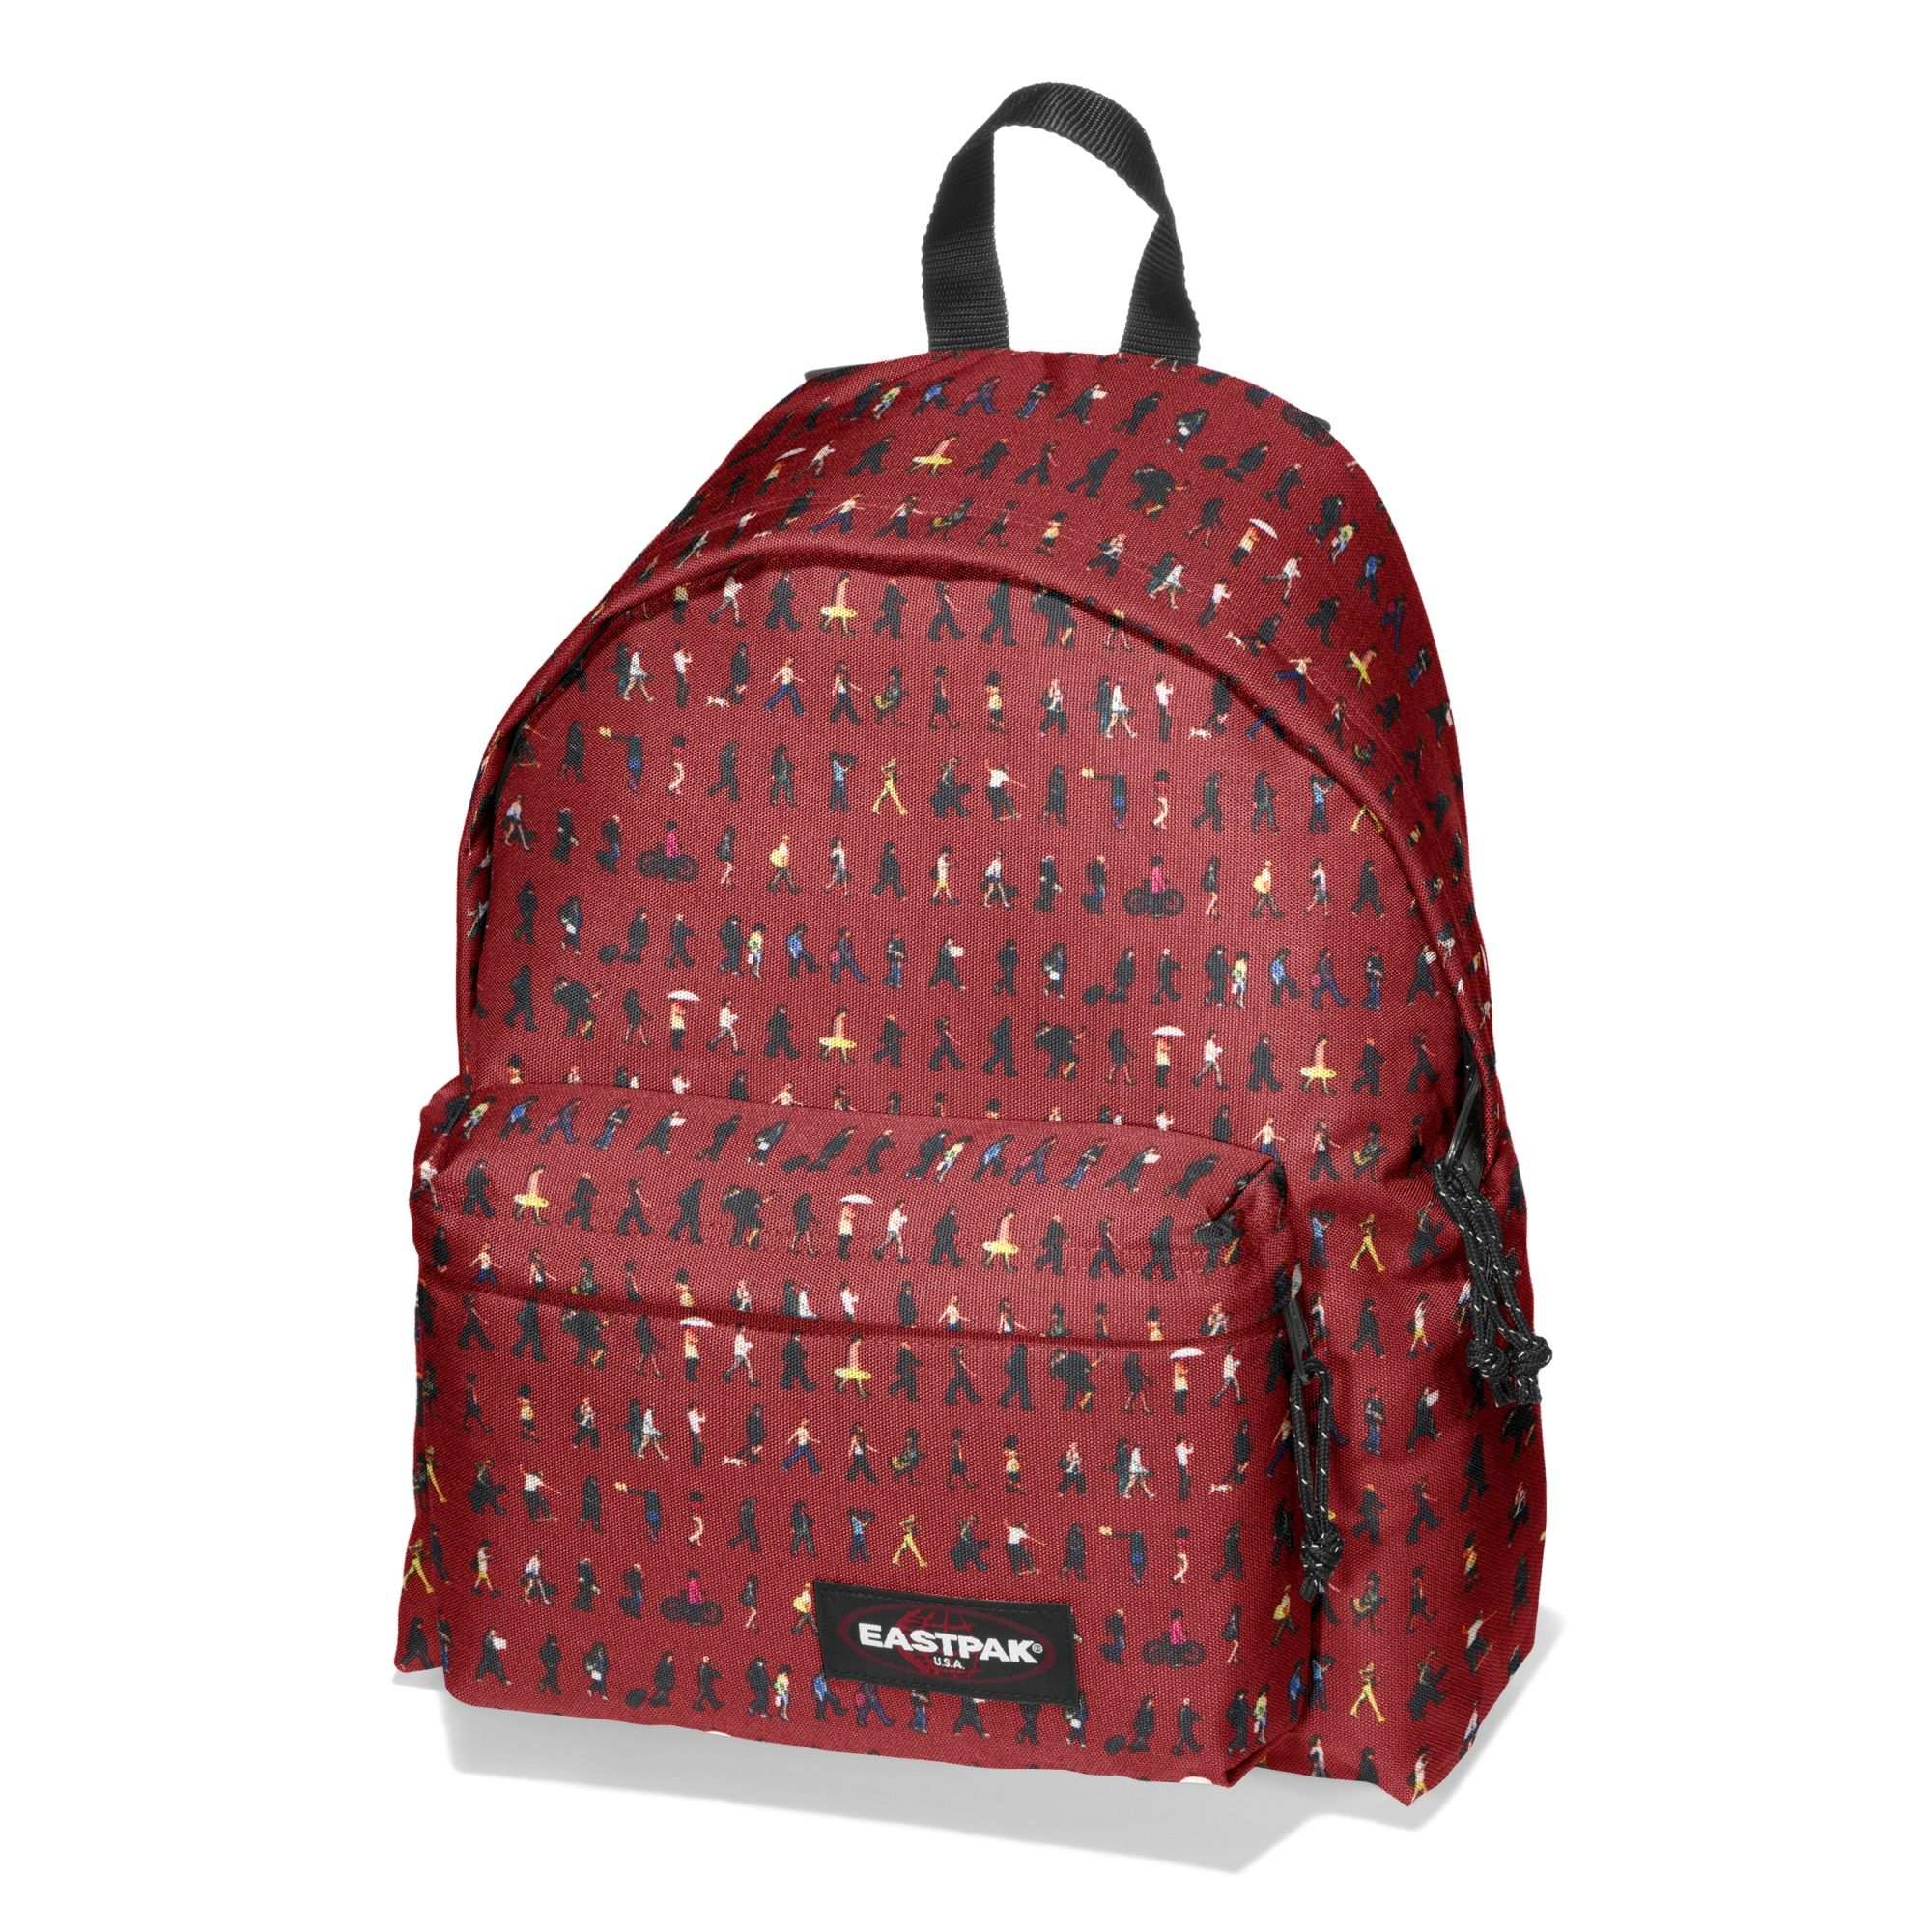 Pin By Lycshop Gr On Padded Pak R The Original Eastpak Backpacks School Supplies The Originals